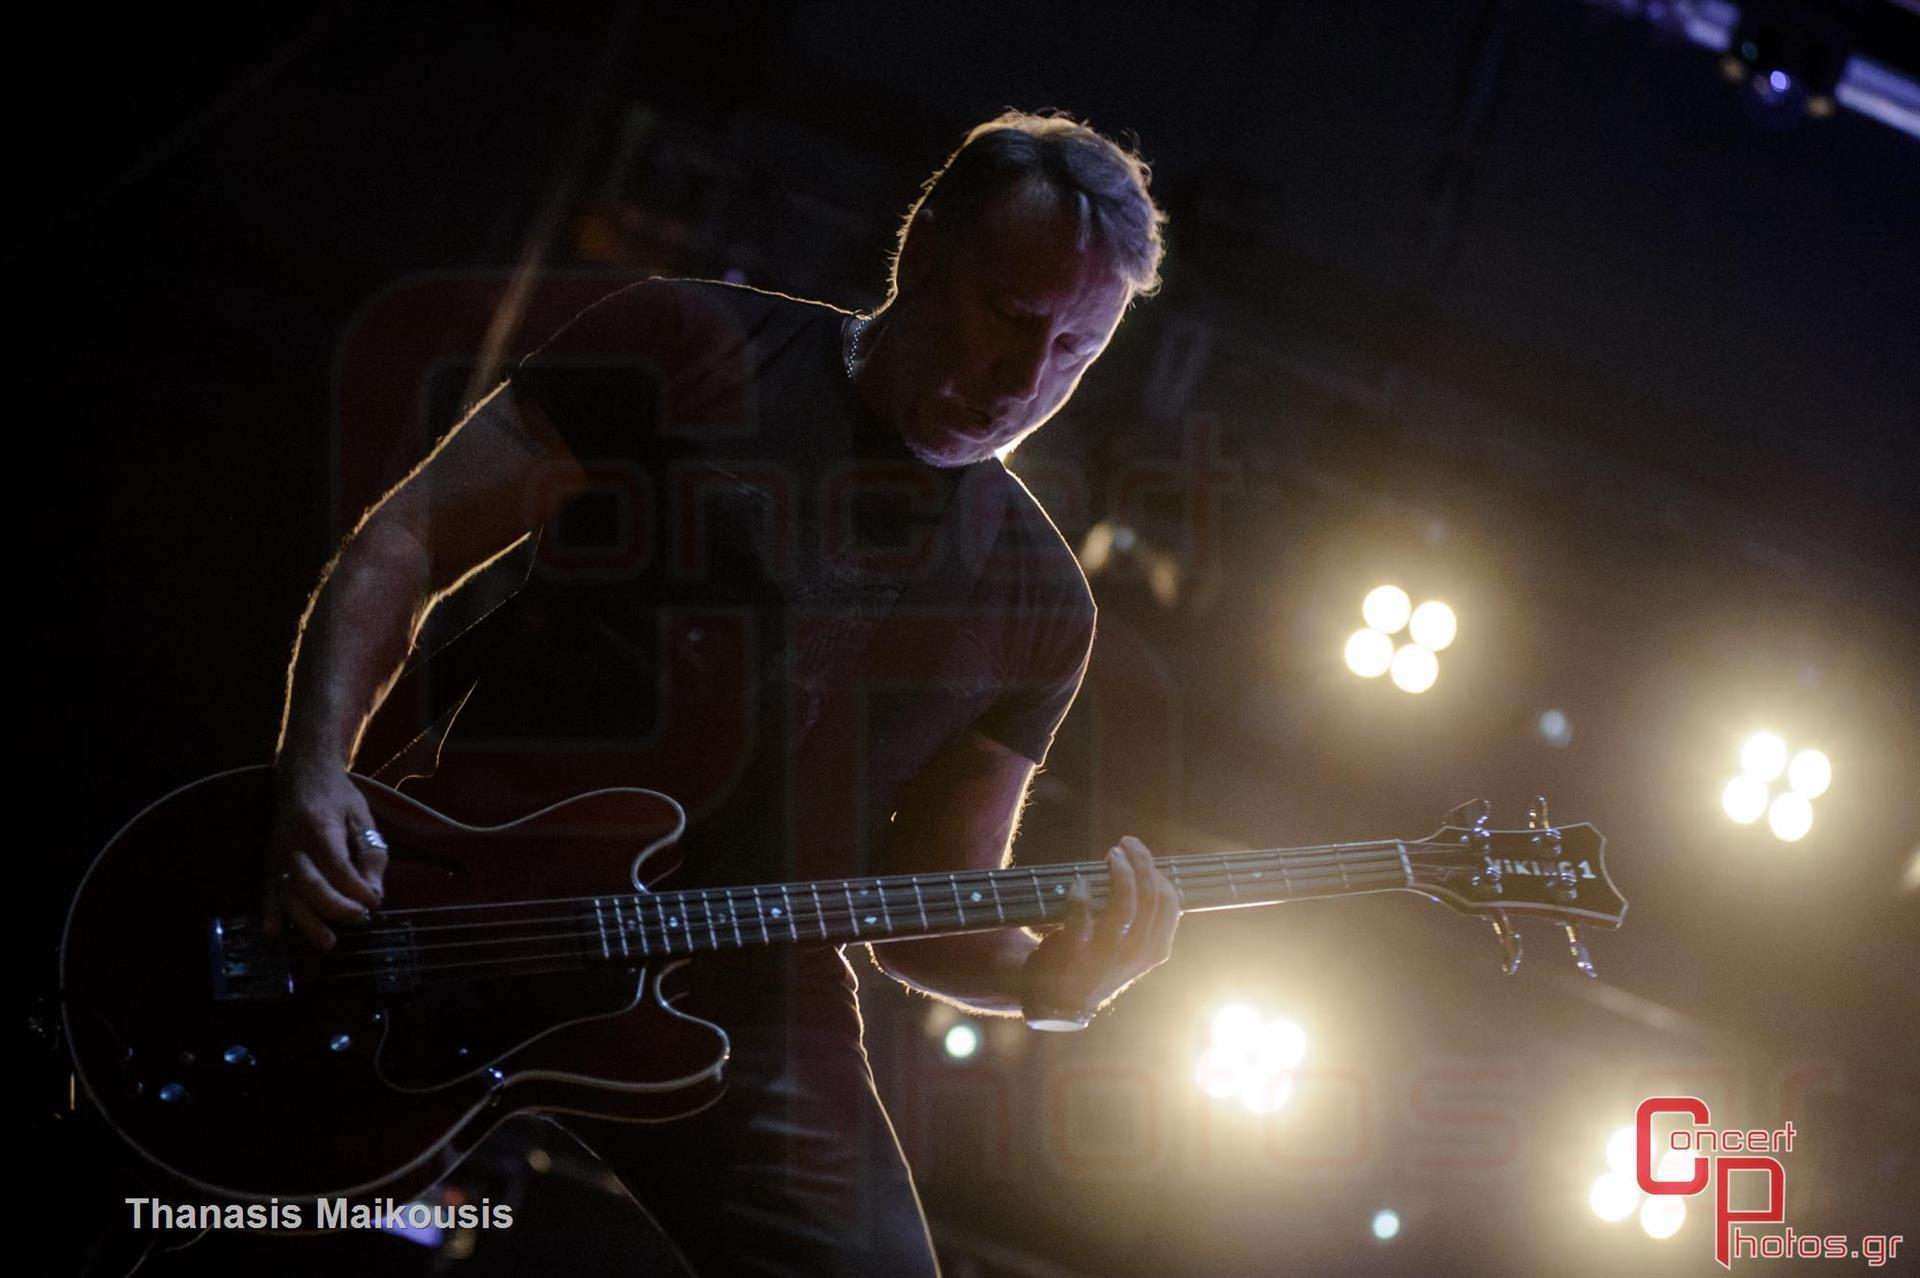 Peter Hook & The Light -Peter Hook & The Light Ejekt 2013 photographer: Thanasis Maikousis - concertphotos_-9320